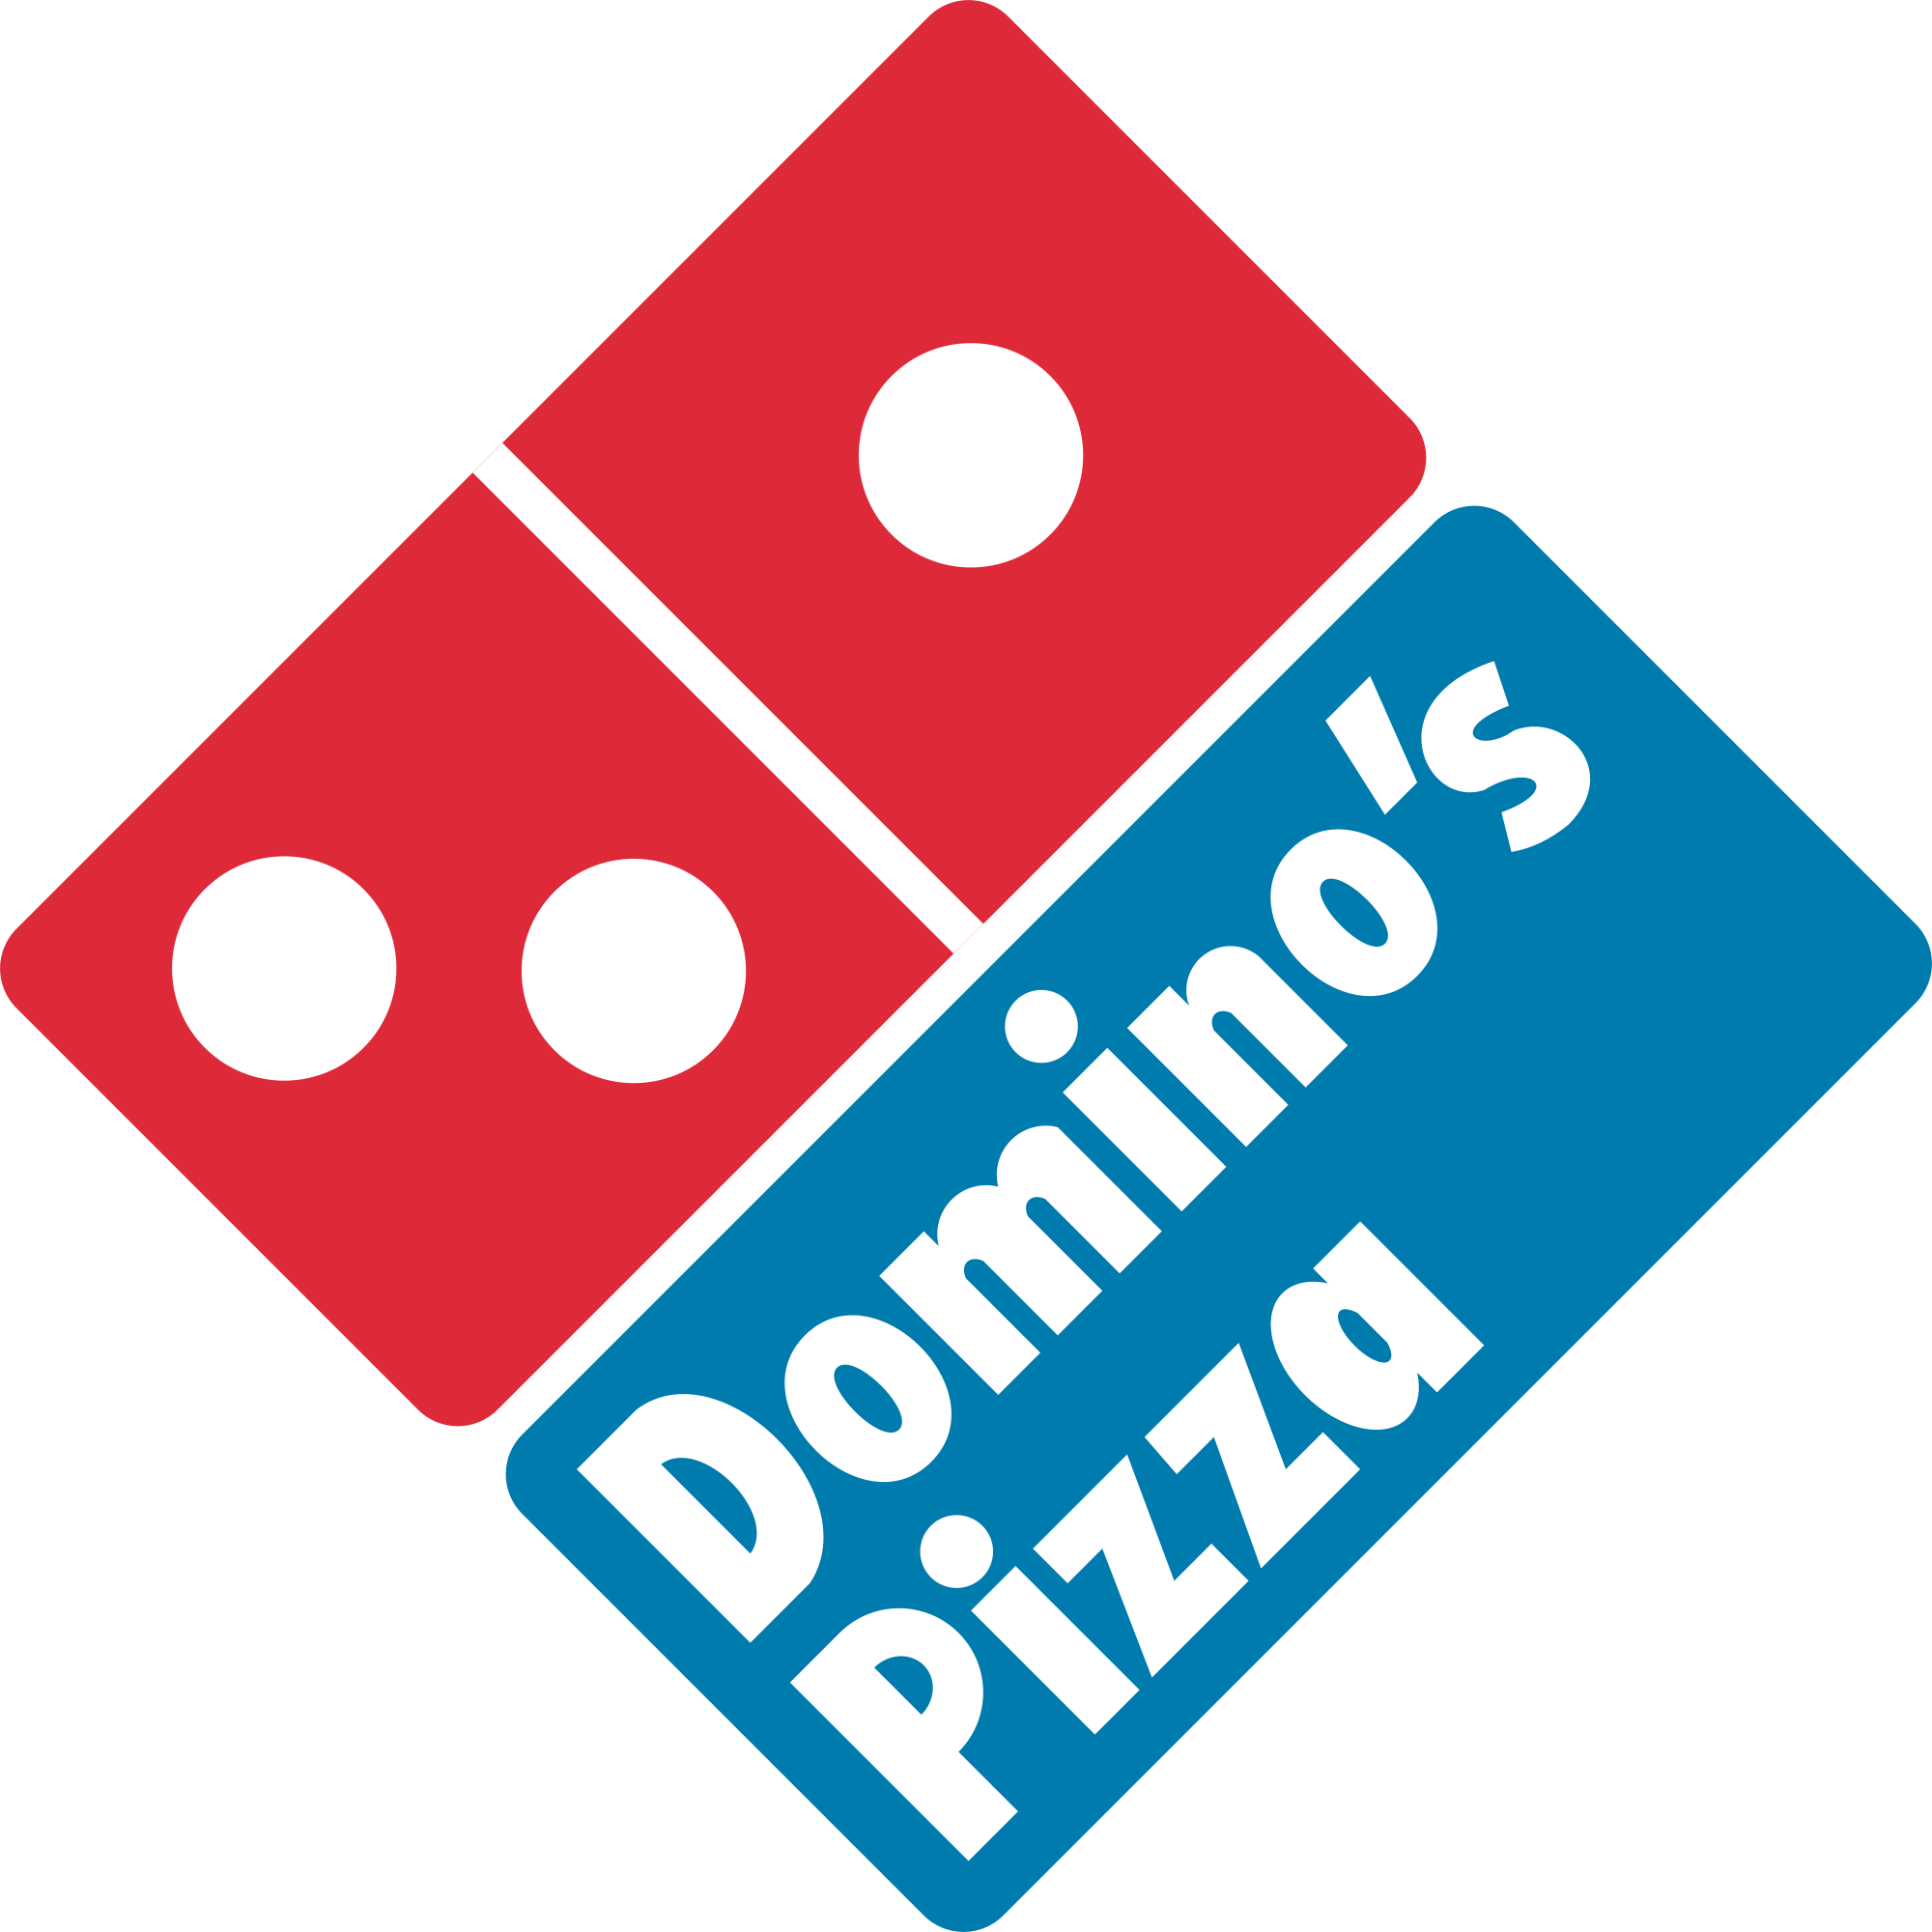 Domino's Pizza (DPZ)